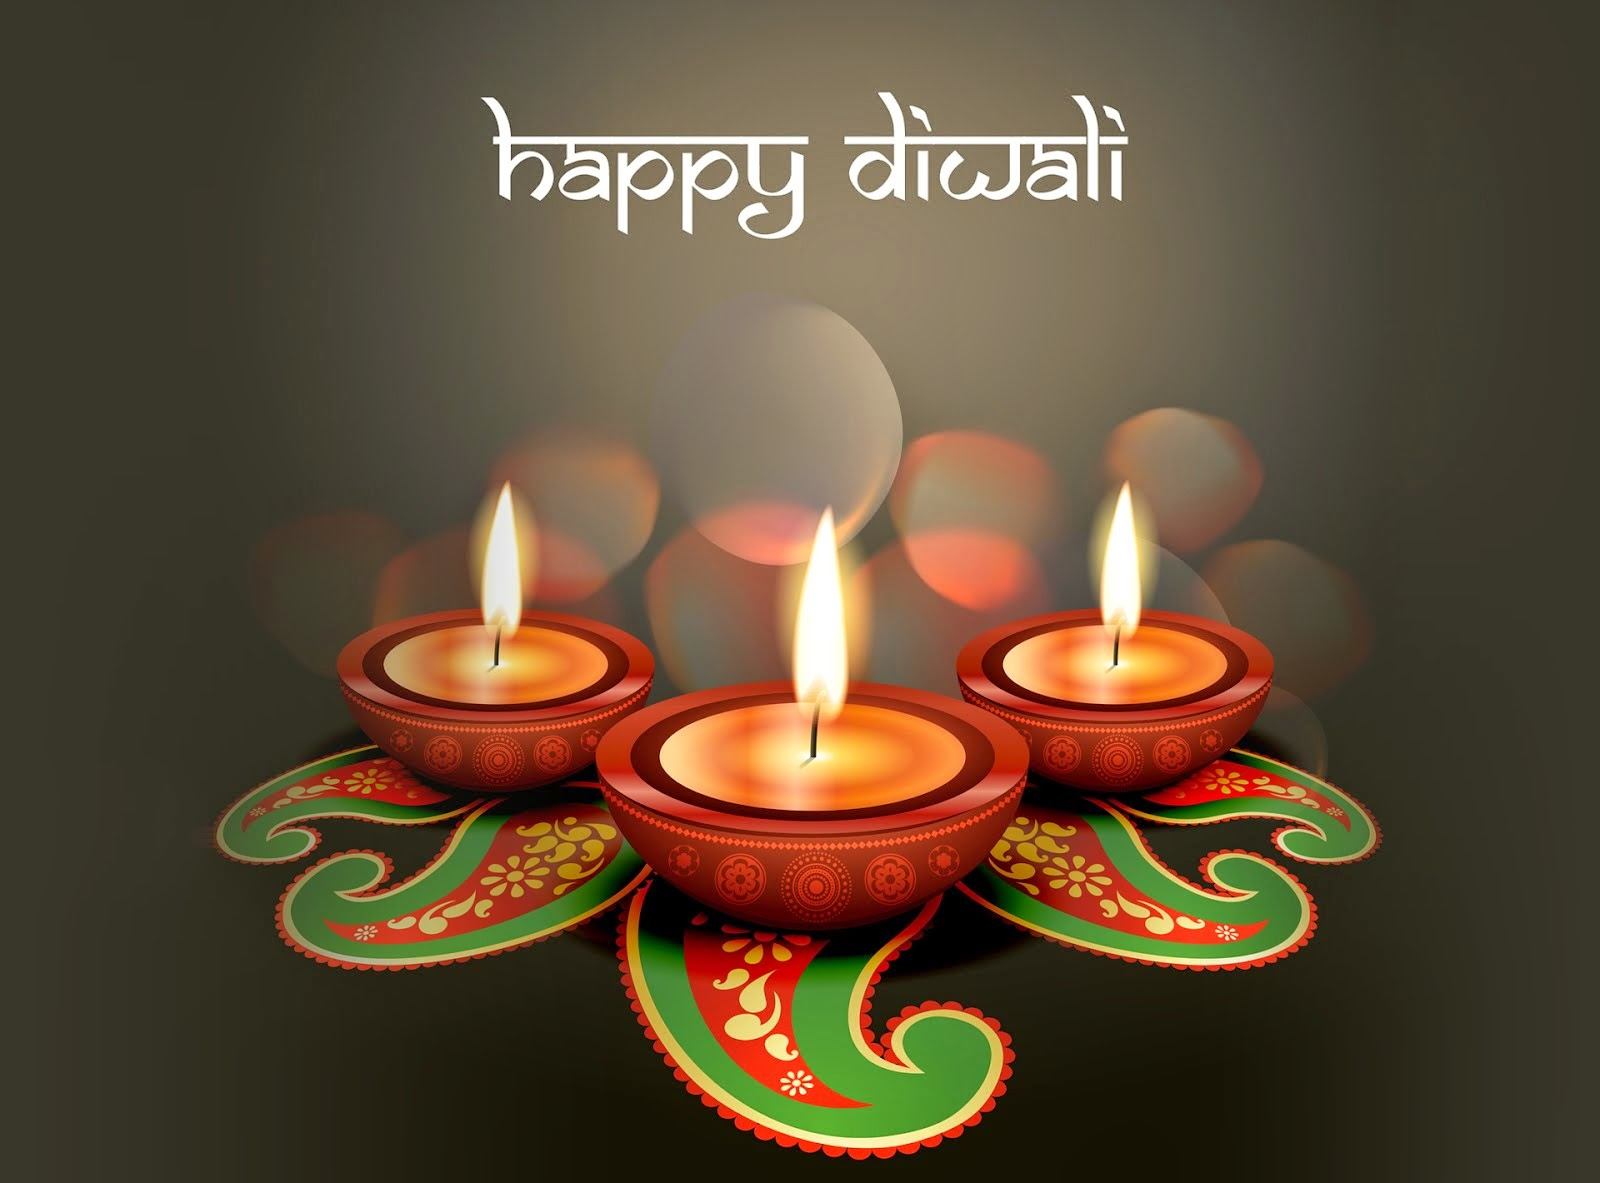 Diwali wallpaper wishes and whatsapp images photos happy diwali wallpaper wishes and whatsapp images photos kristyandbryce Gallery